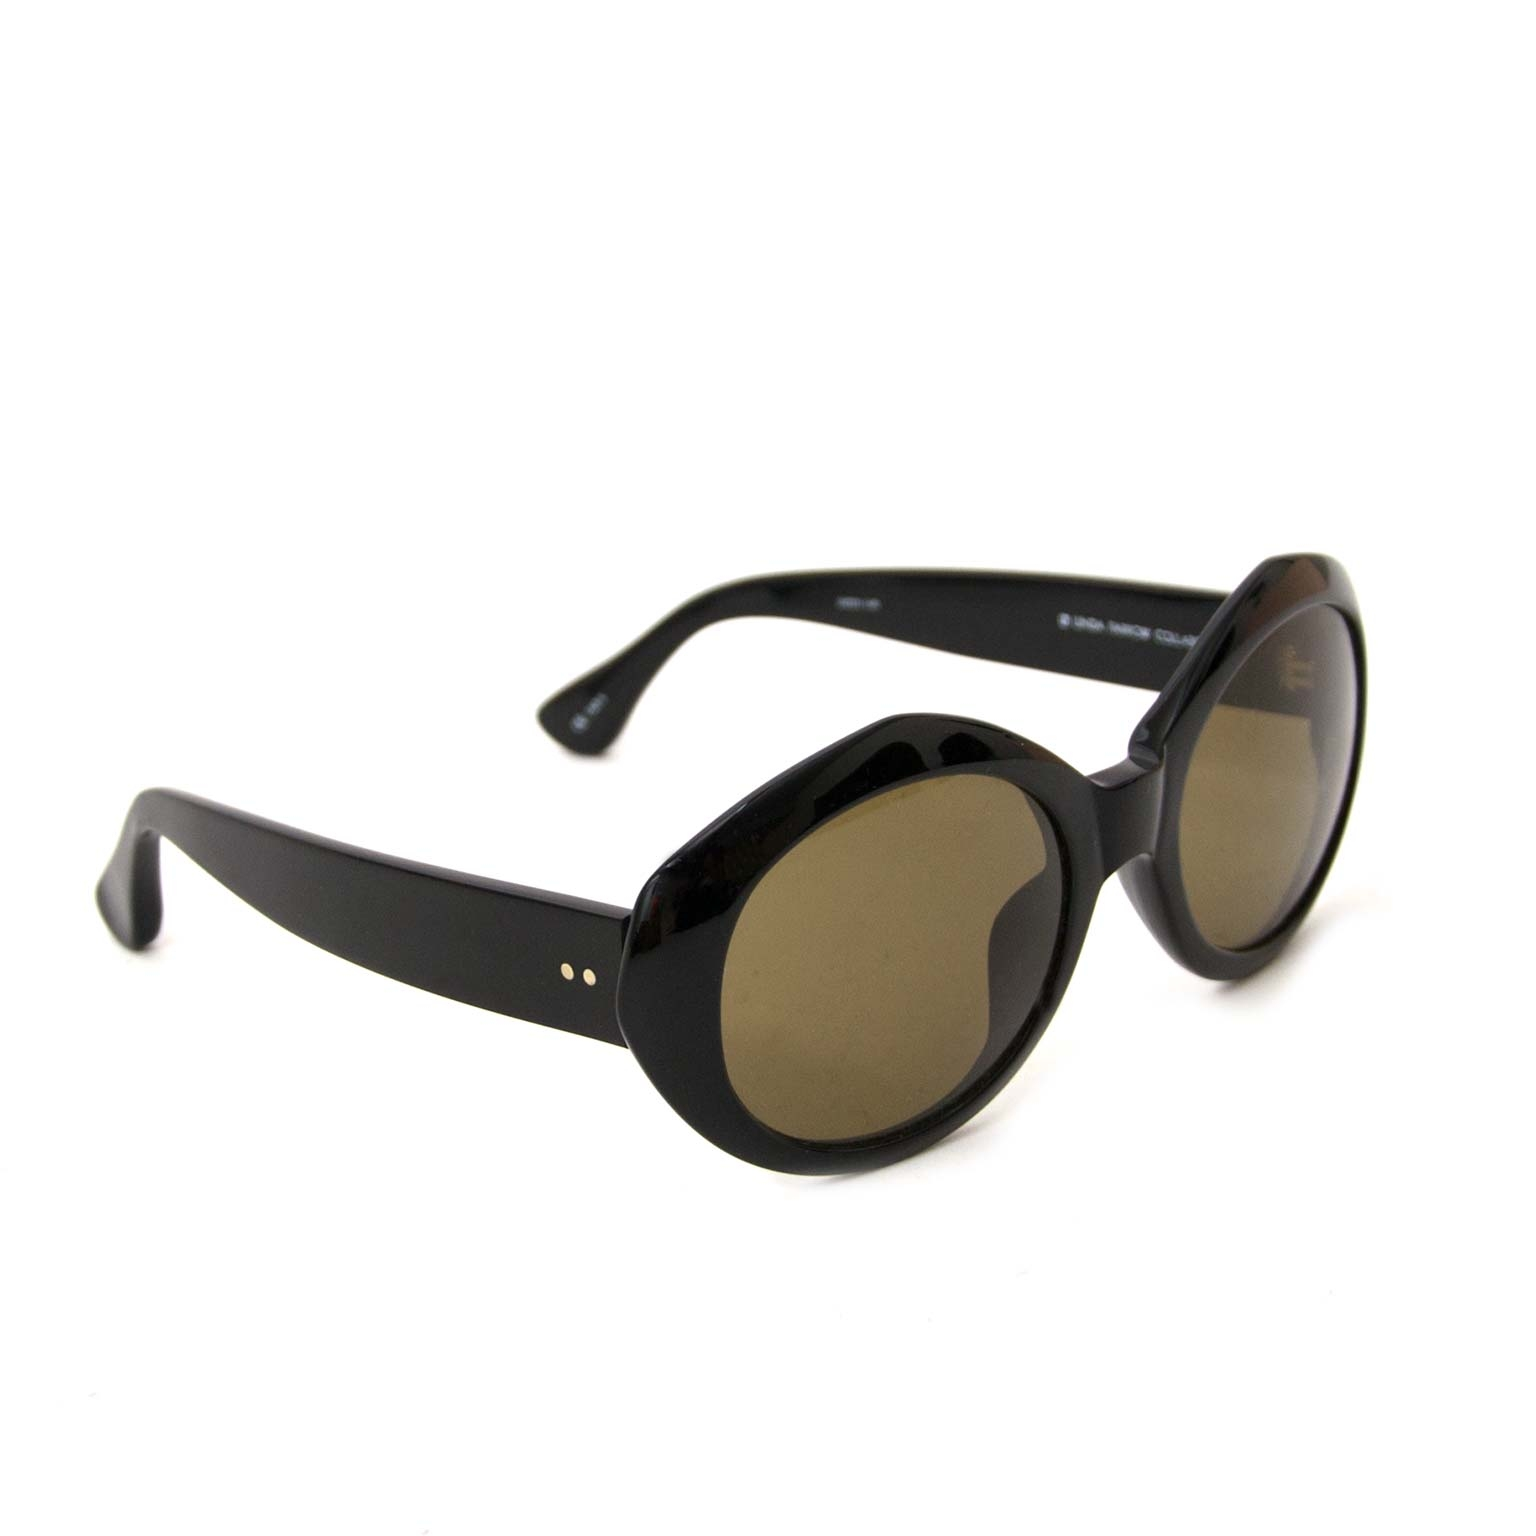 Labellov vintage fashion webshop with Dries Van Noten sunglasses